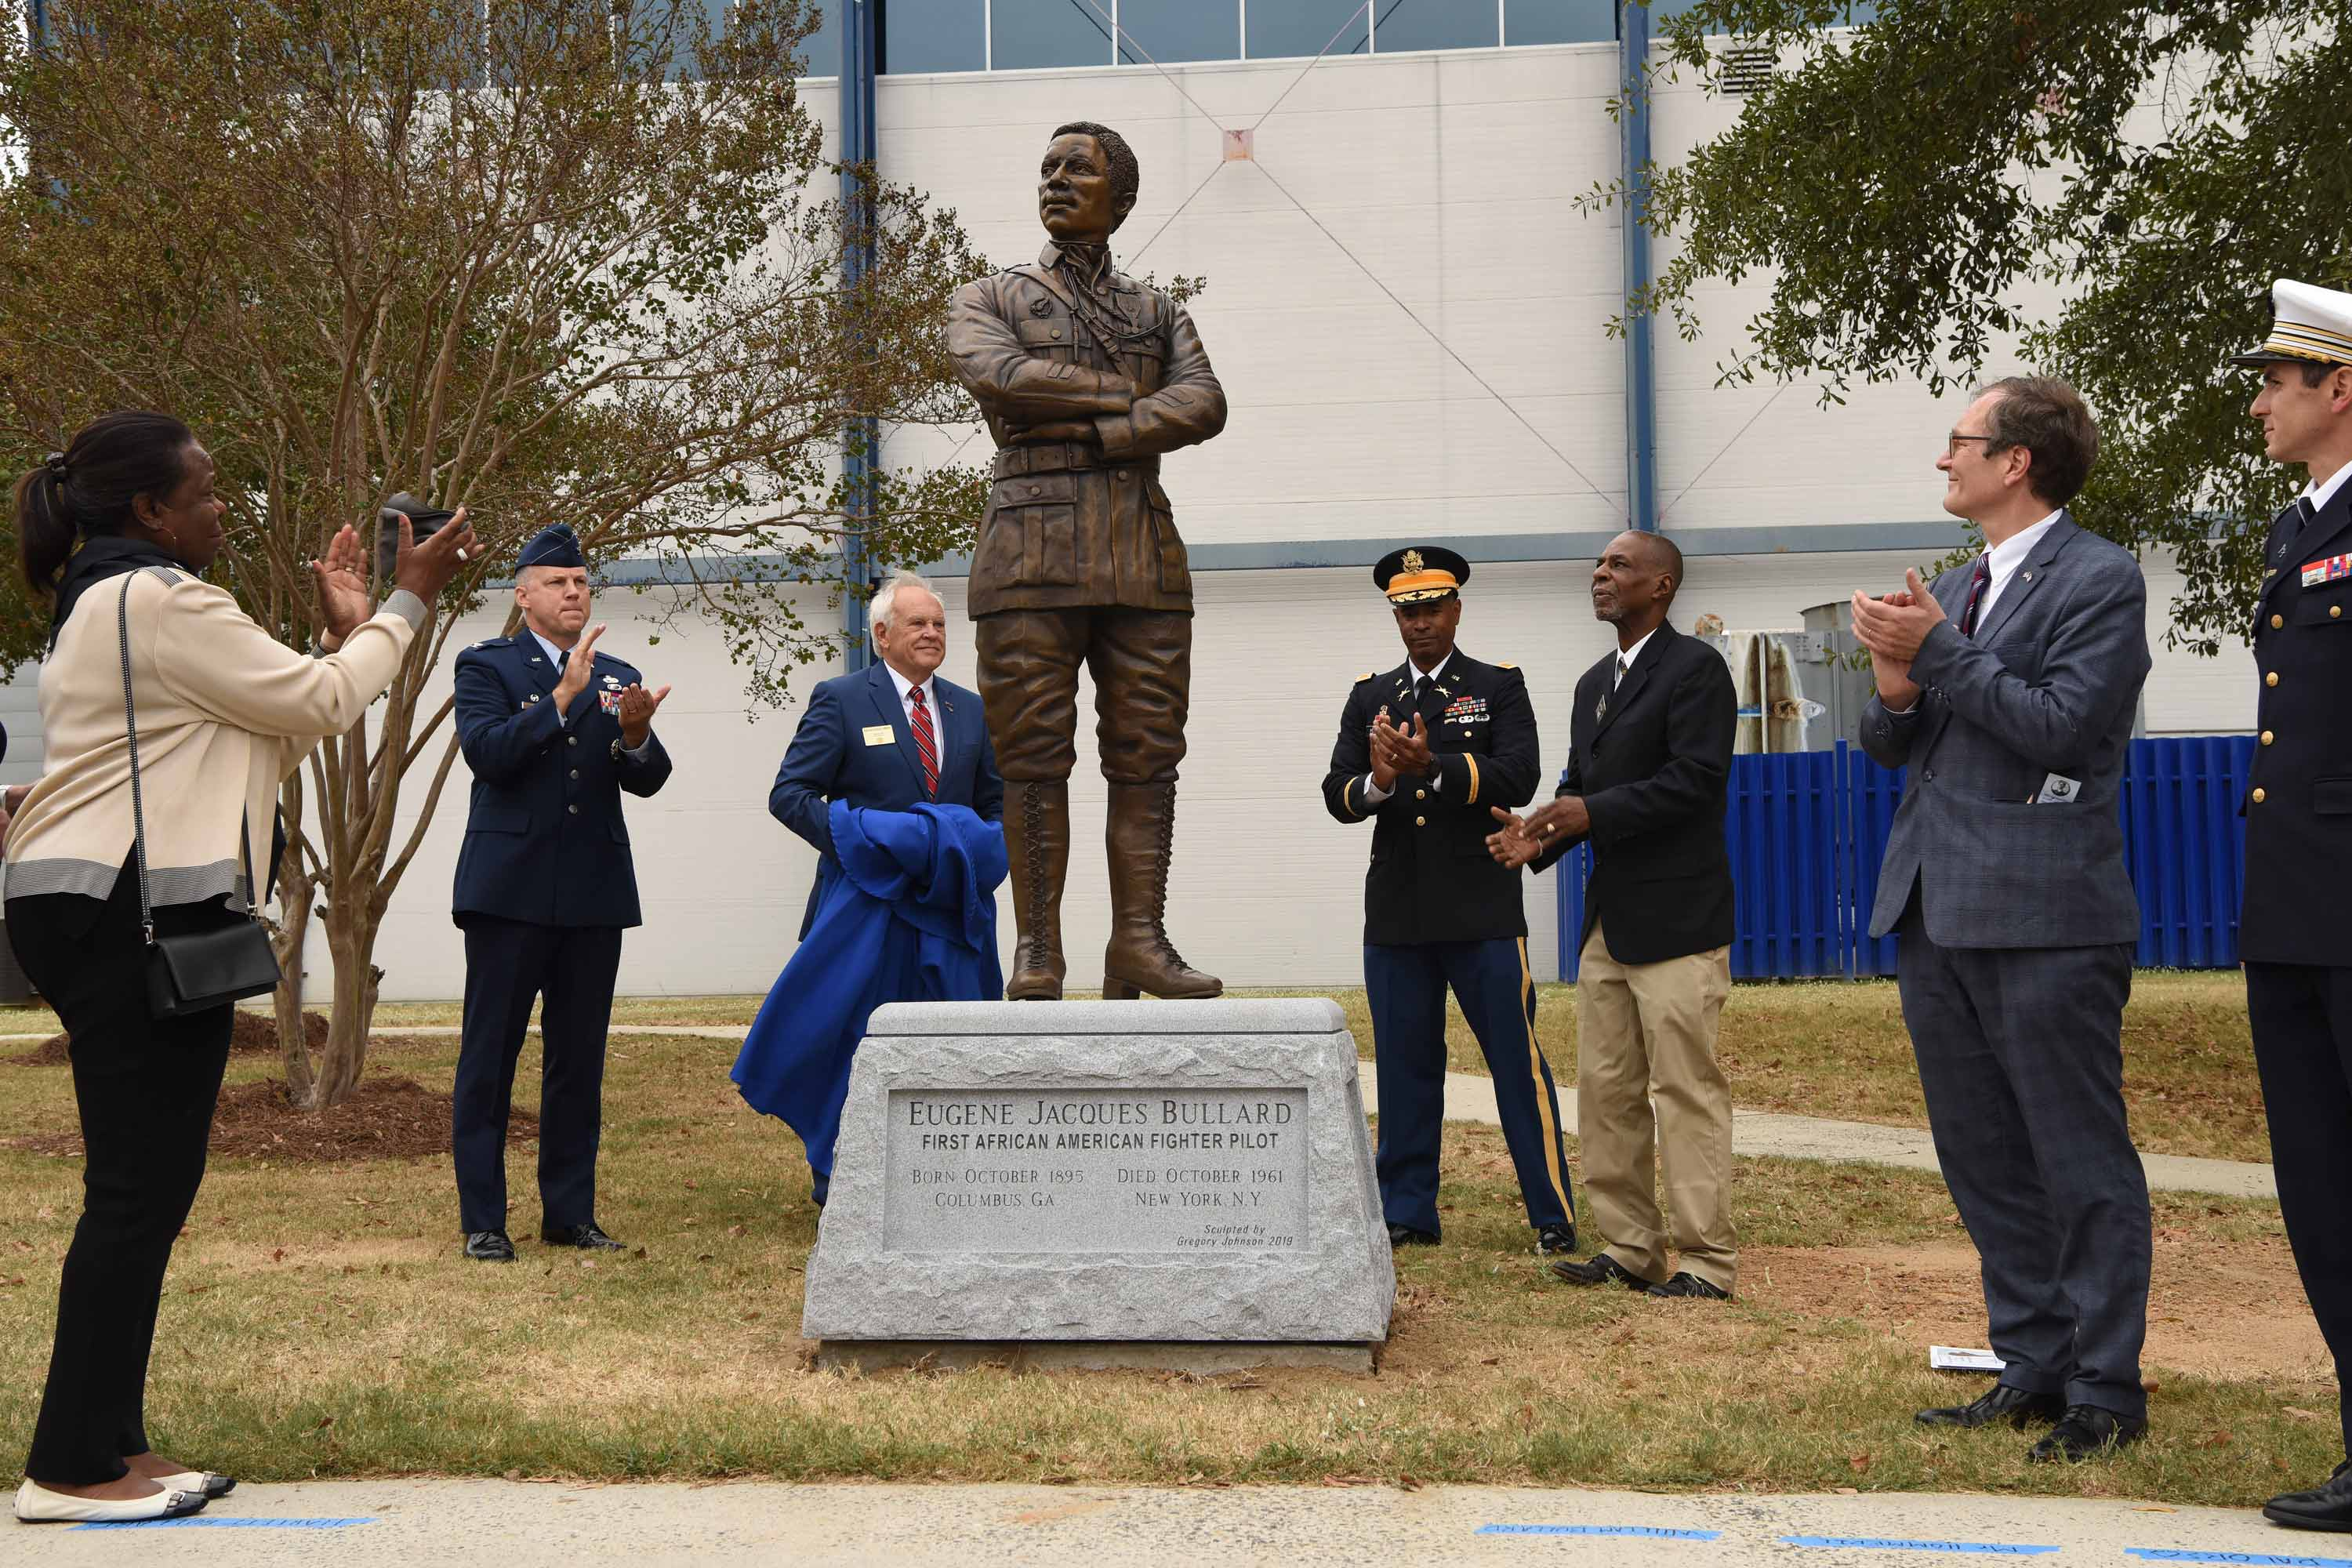 World's First Black Fighter Pilot Honored at Museum of Aviation